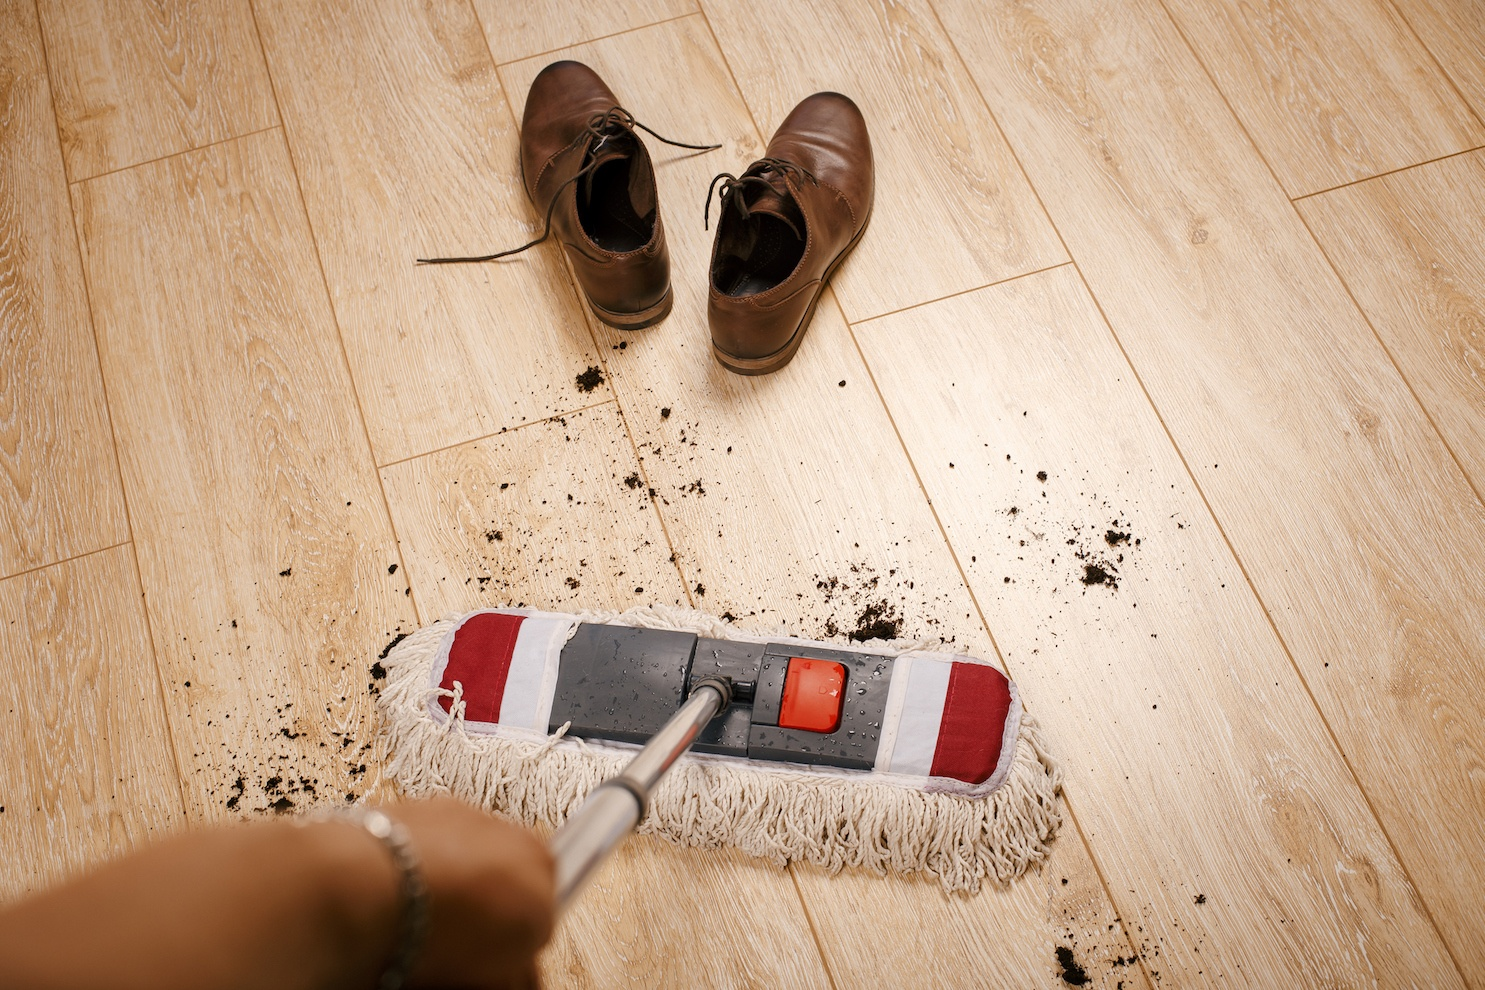 Mopping up after dirty shoes in the house